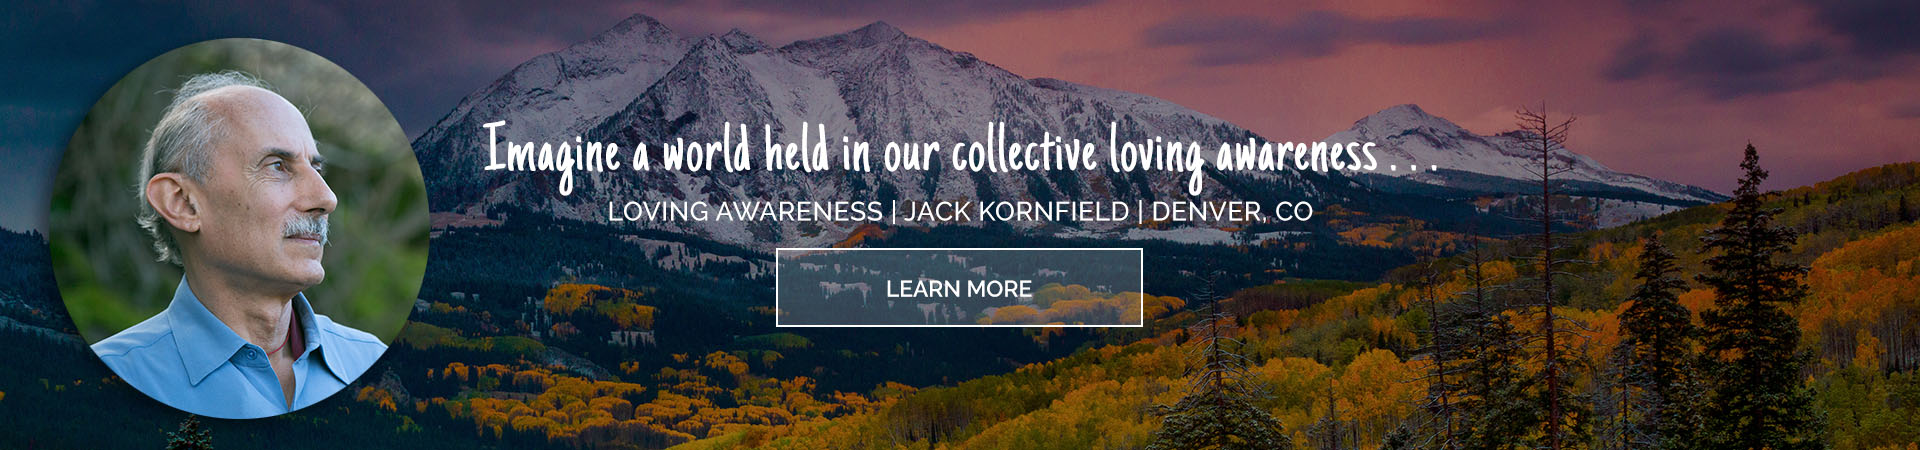 Jack Kornfield Loving Awareness Event